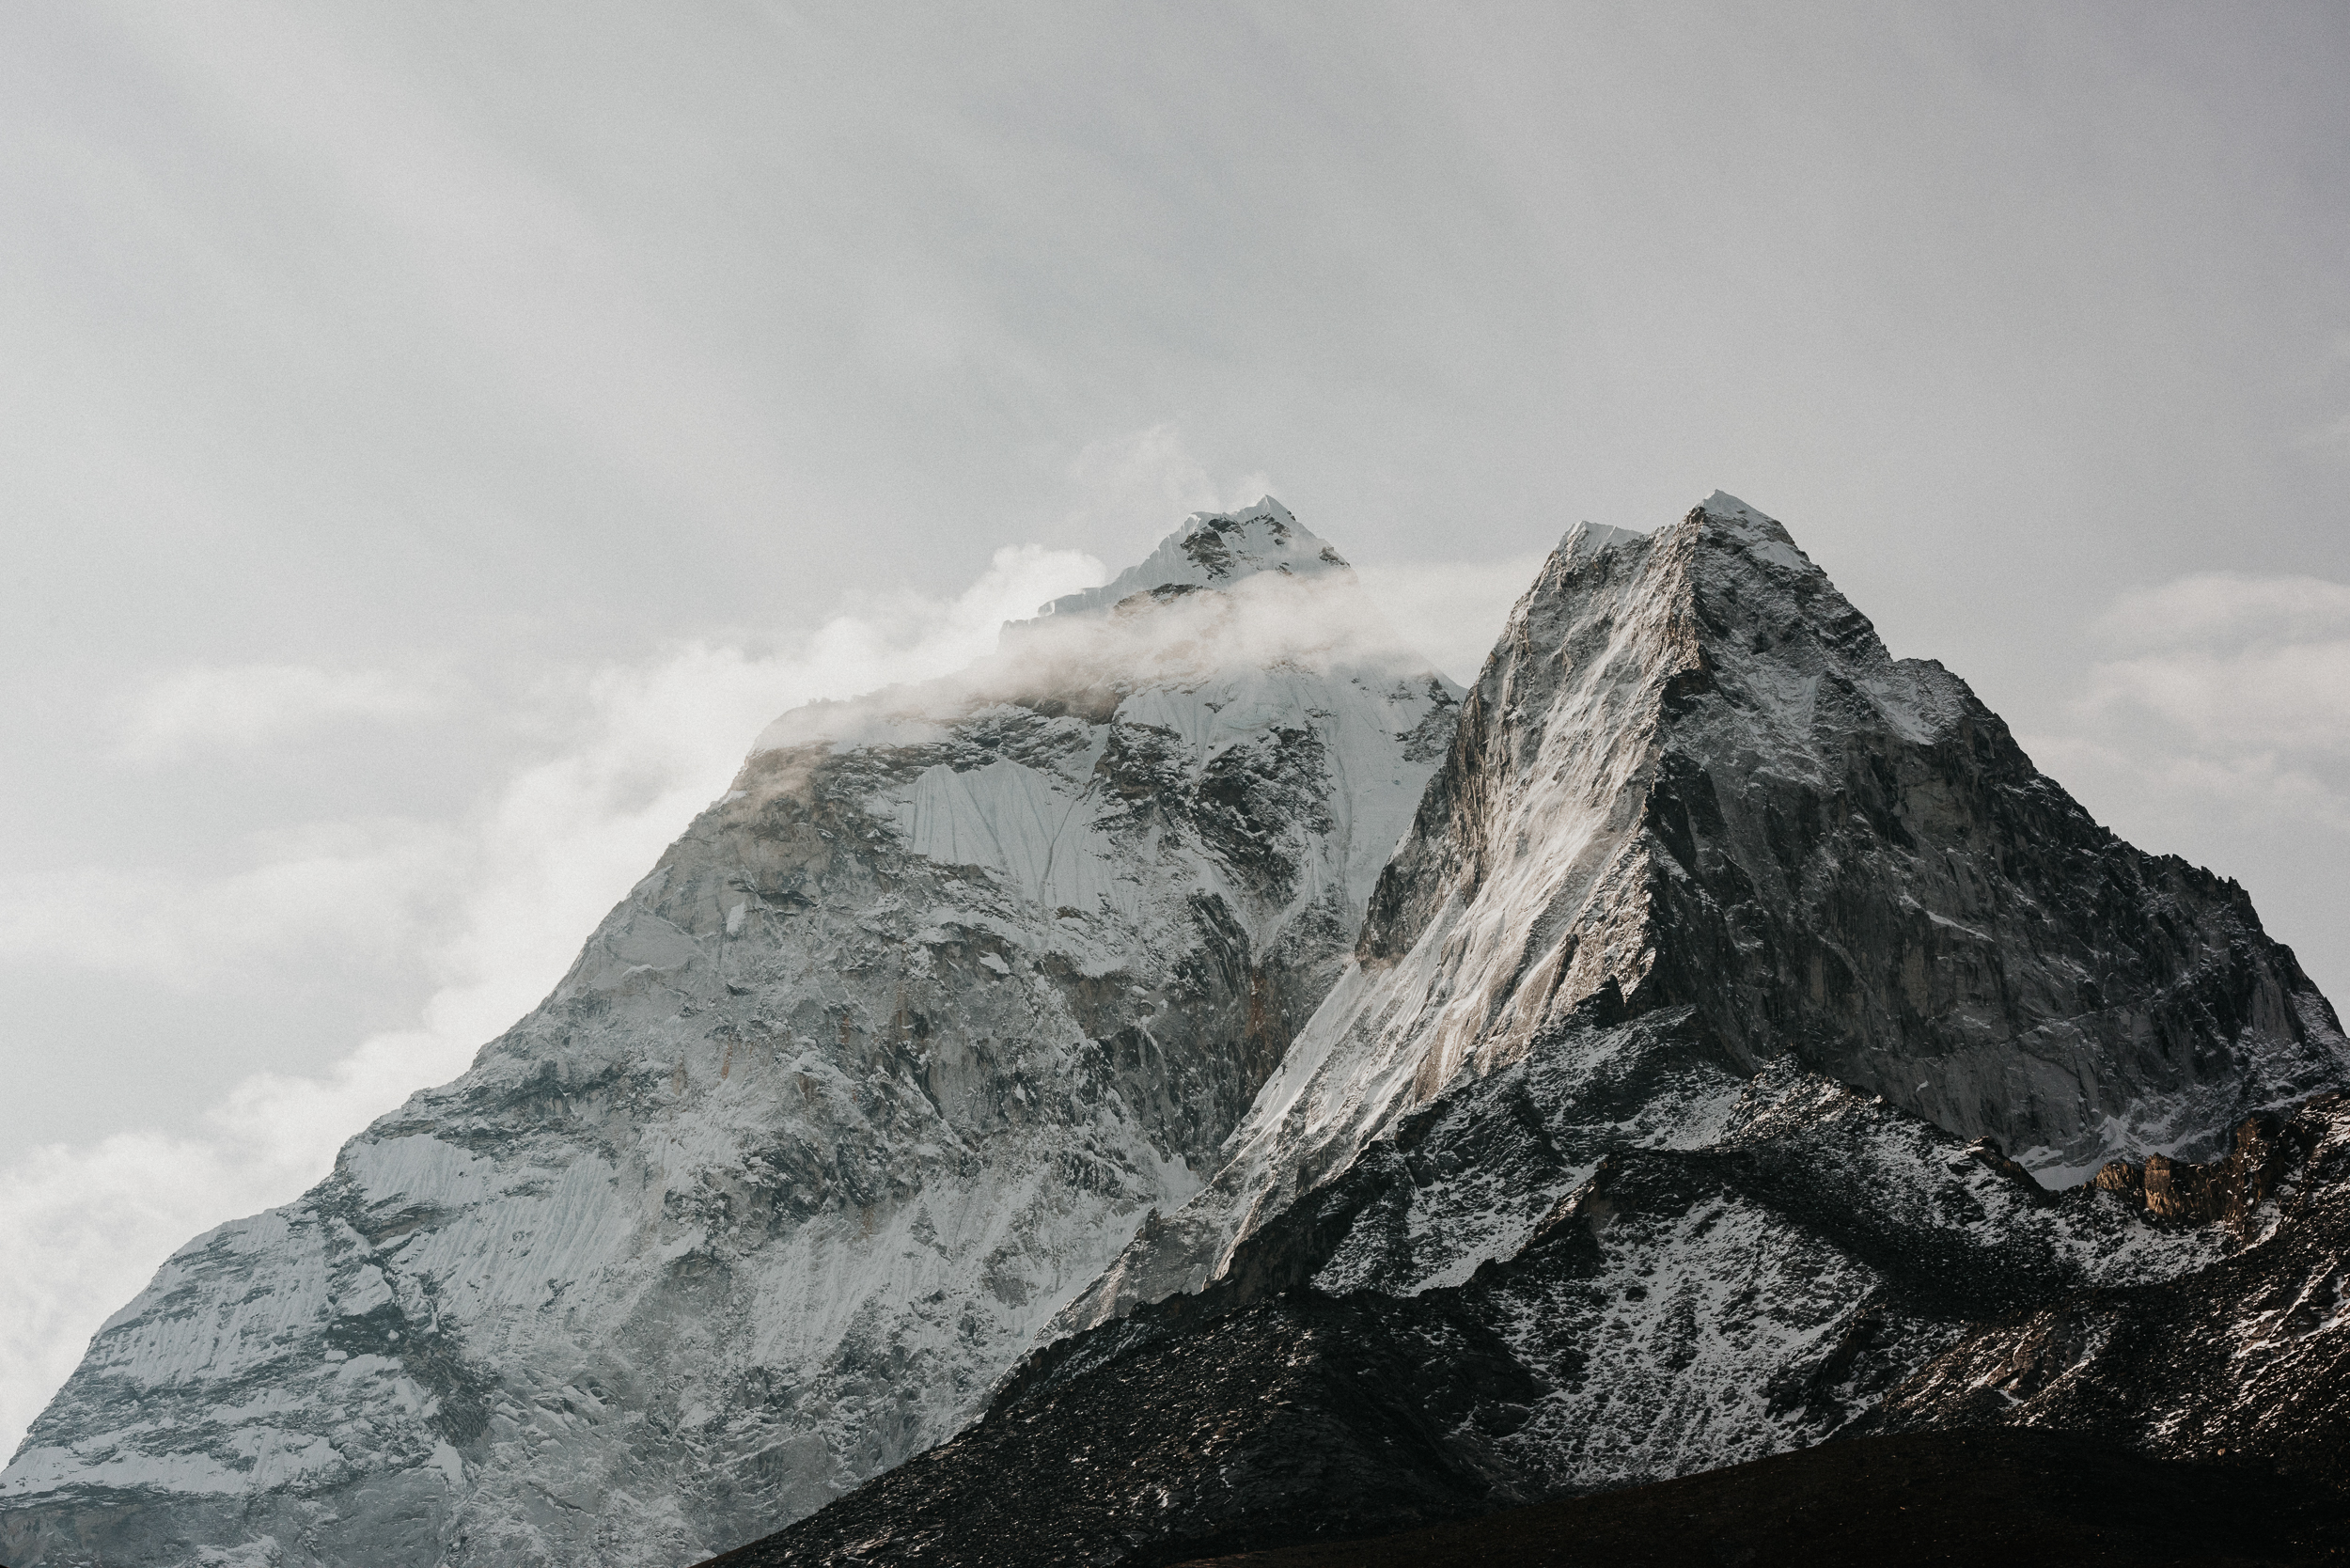 Nepal_EverestBaseCamp_2019_TaraShupe_Photography_DSC_4037.jpg